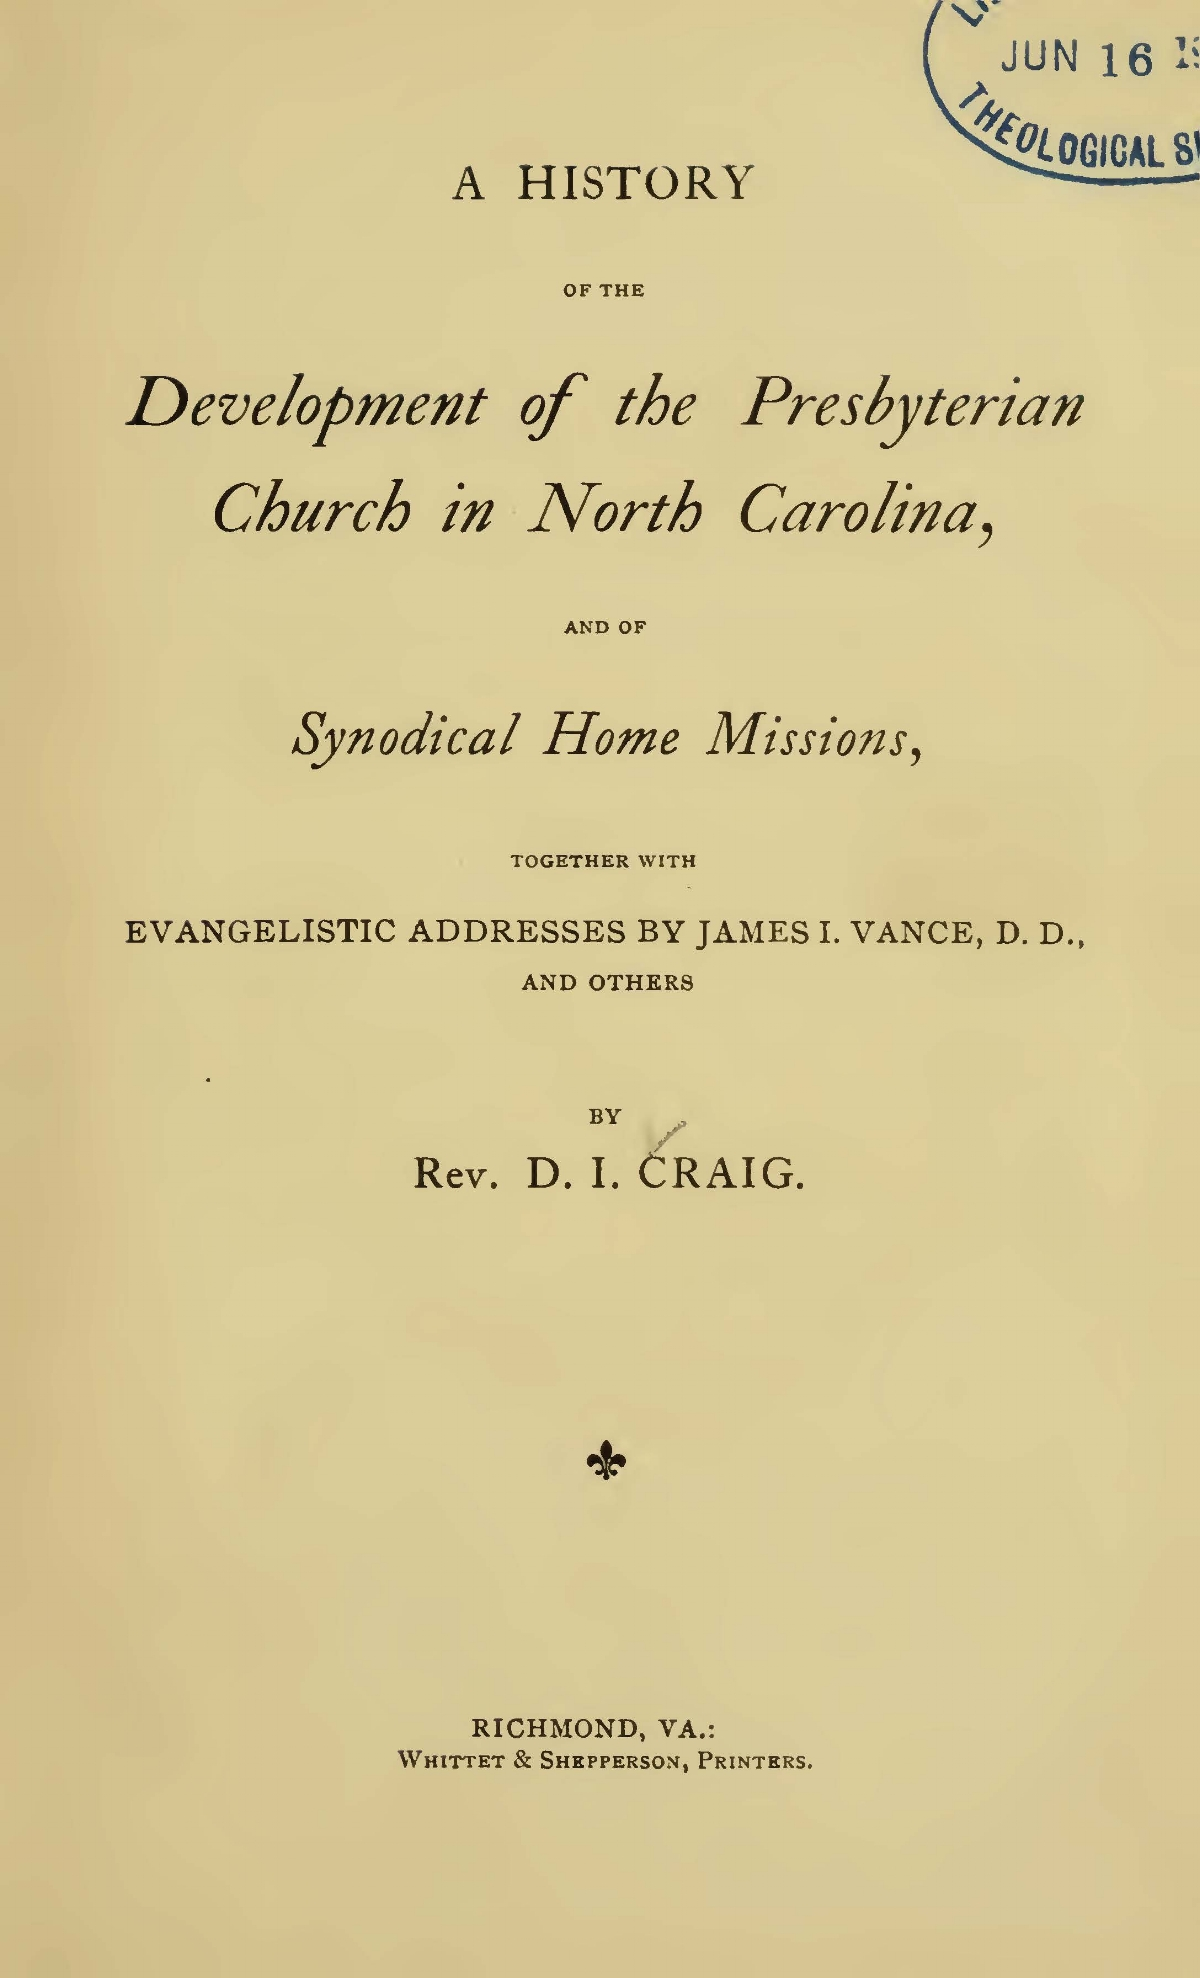 Craig, David Irwin, A History of the Development of the Presbyterian Church in North Carolina Title Page.jpg